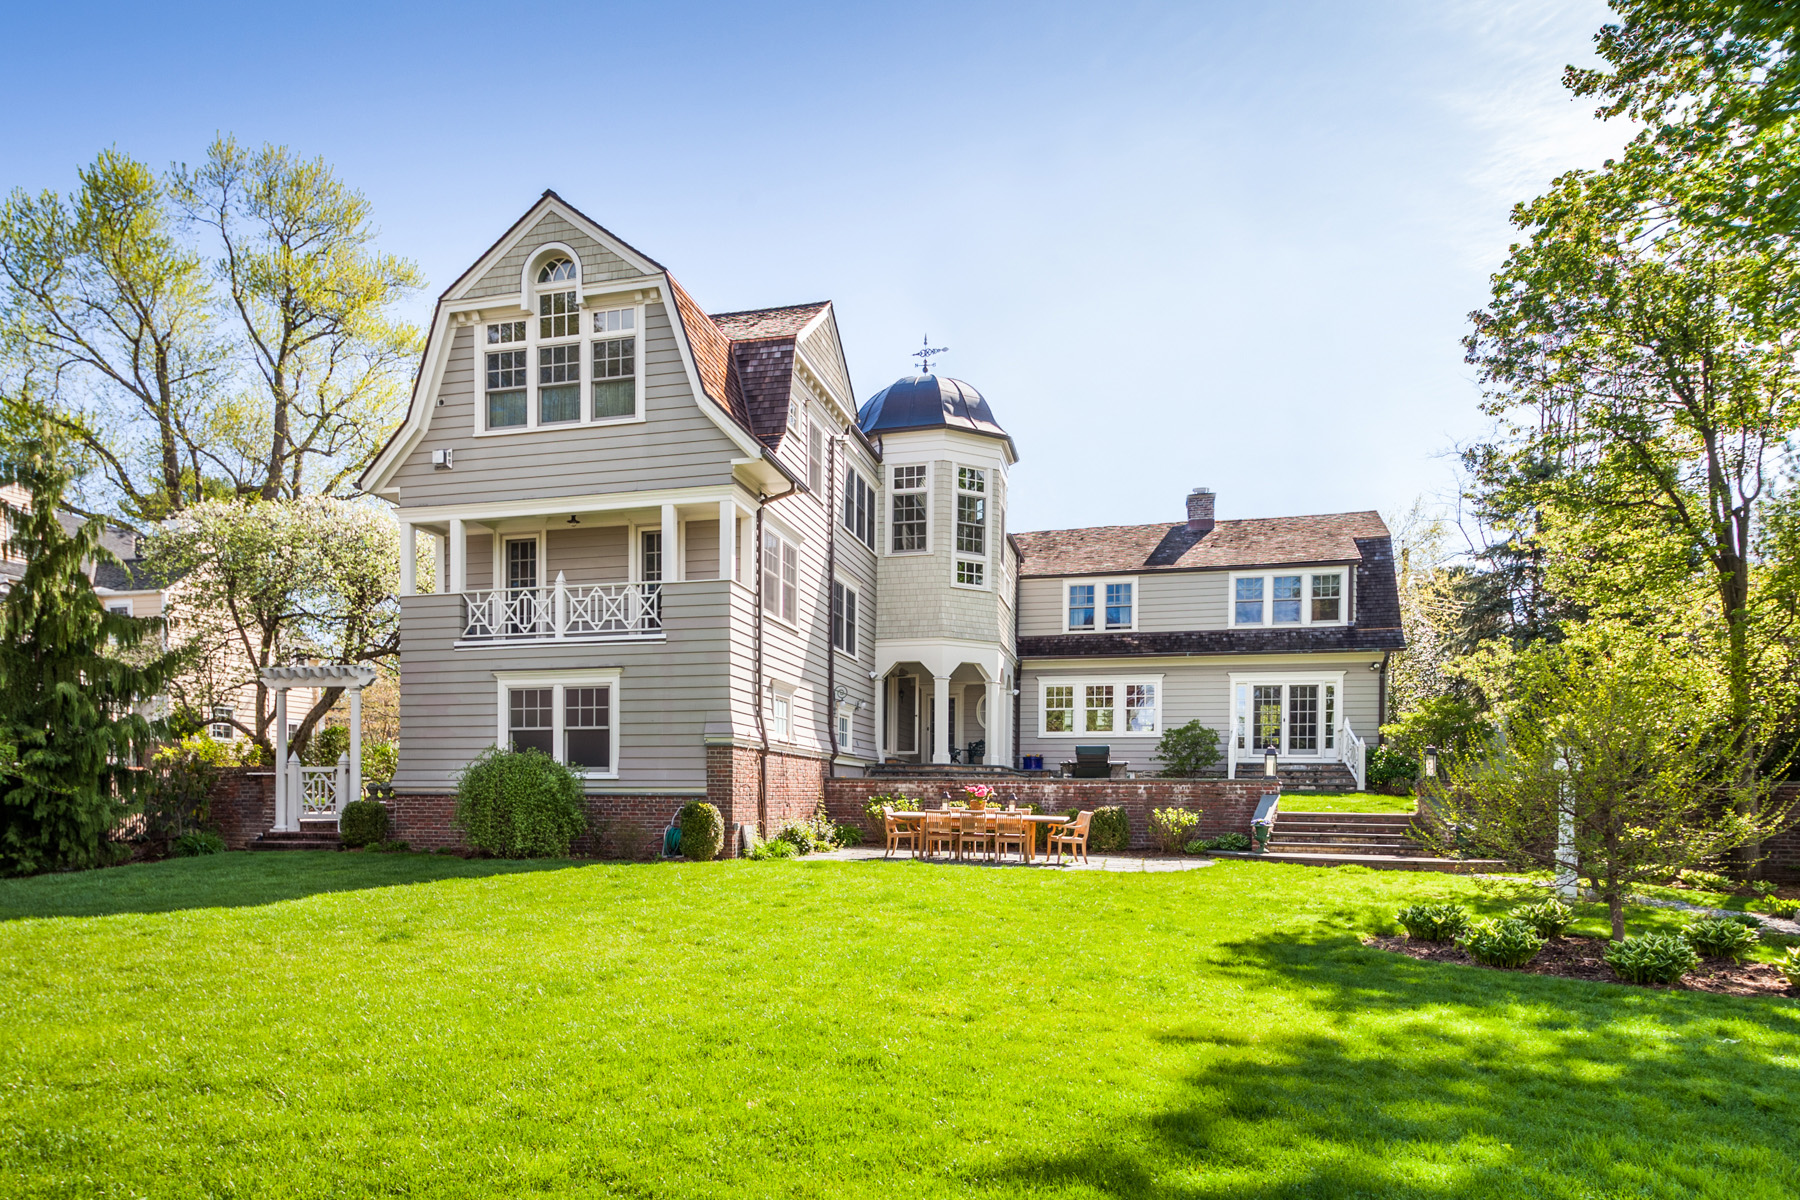 Single Family Home for Sale at Spectacular Bronxville Property 25 Greenfield Avenue Bronxville, New York 10708 United States